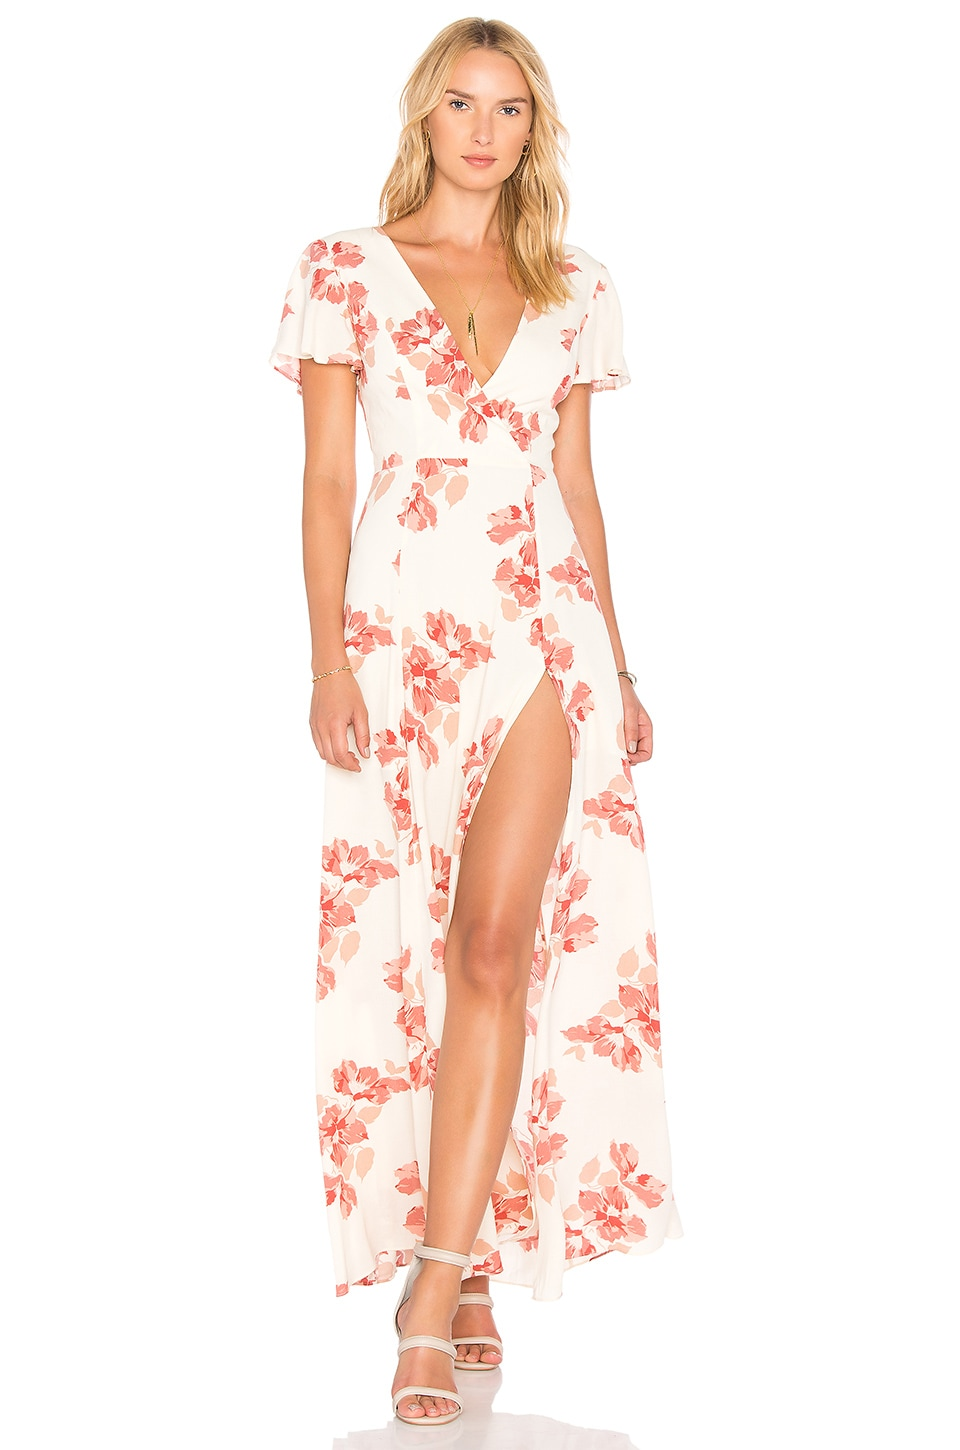 Privacy Please Rebecca Dress in Claudette Blush